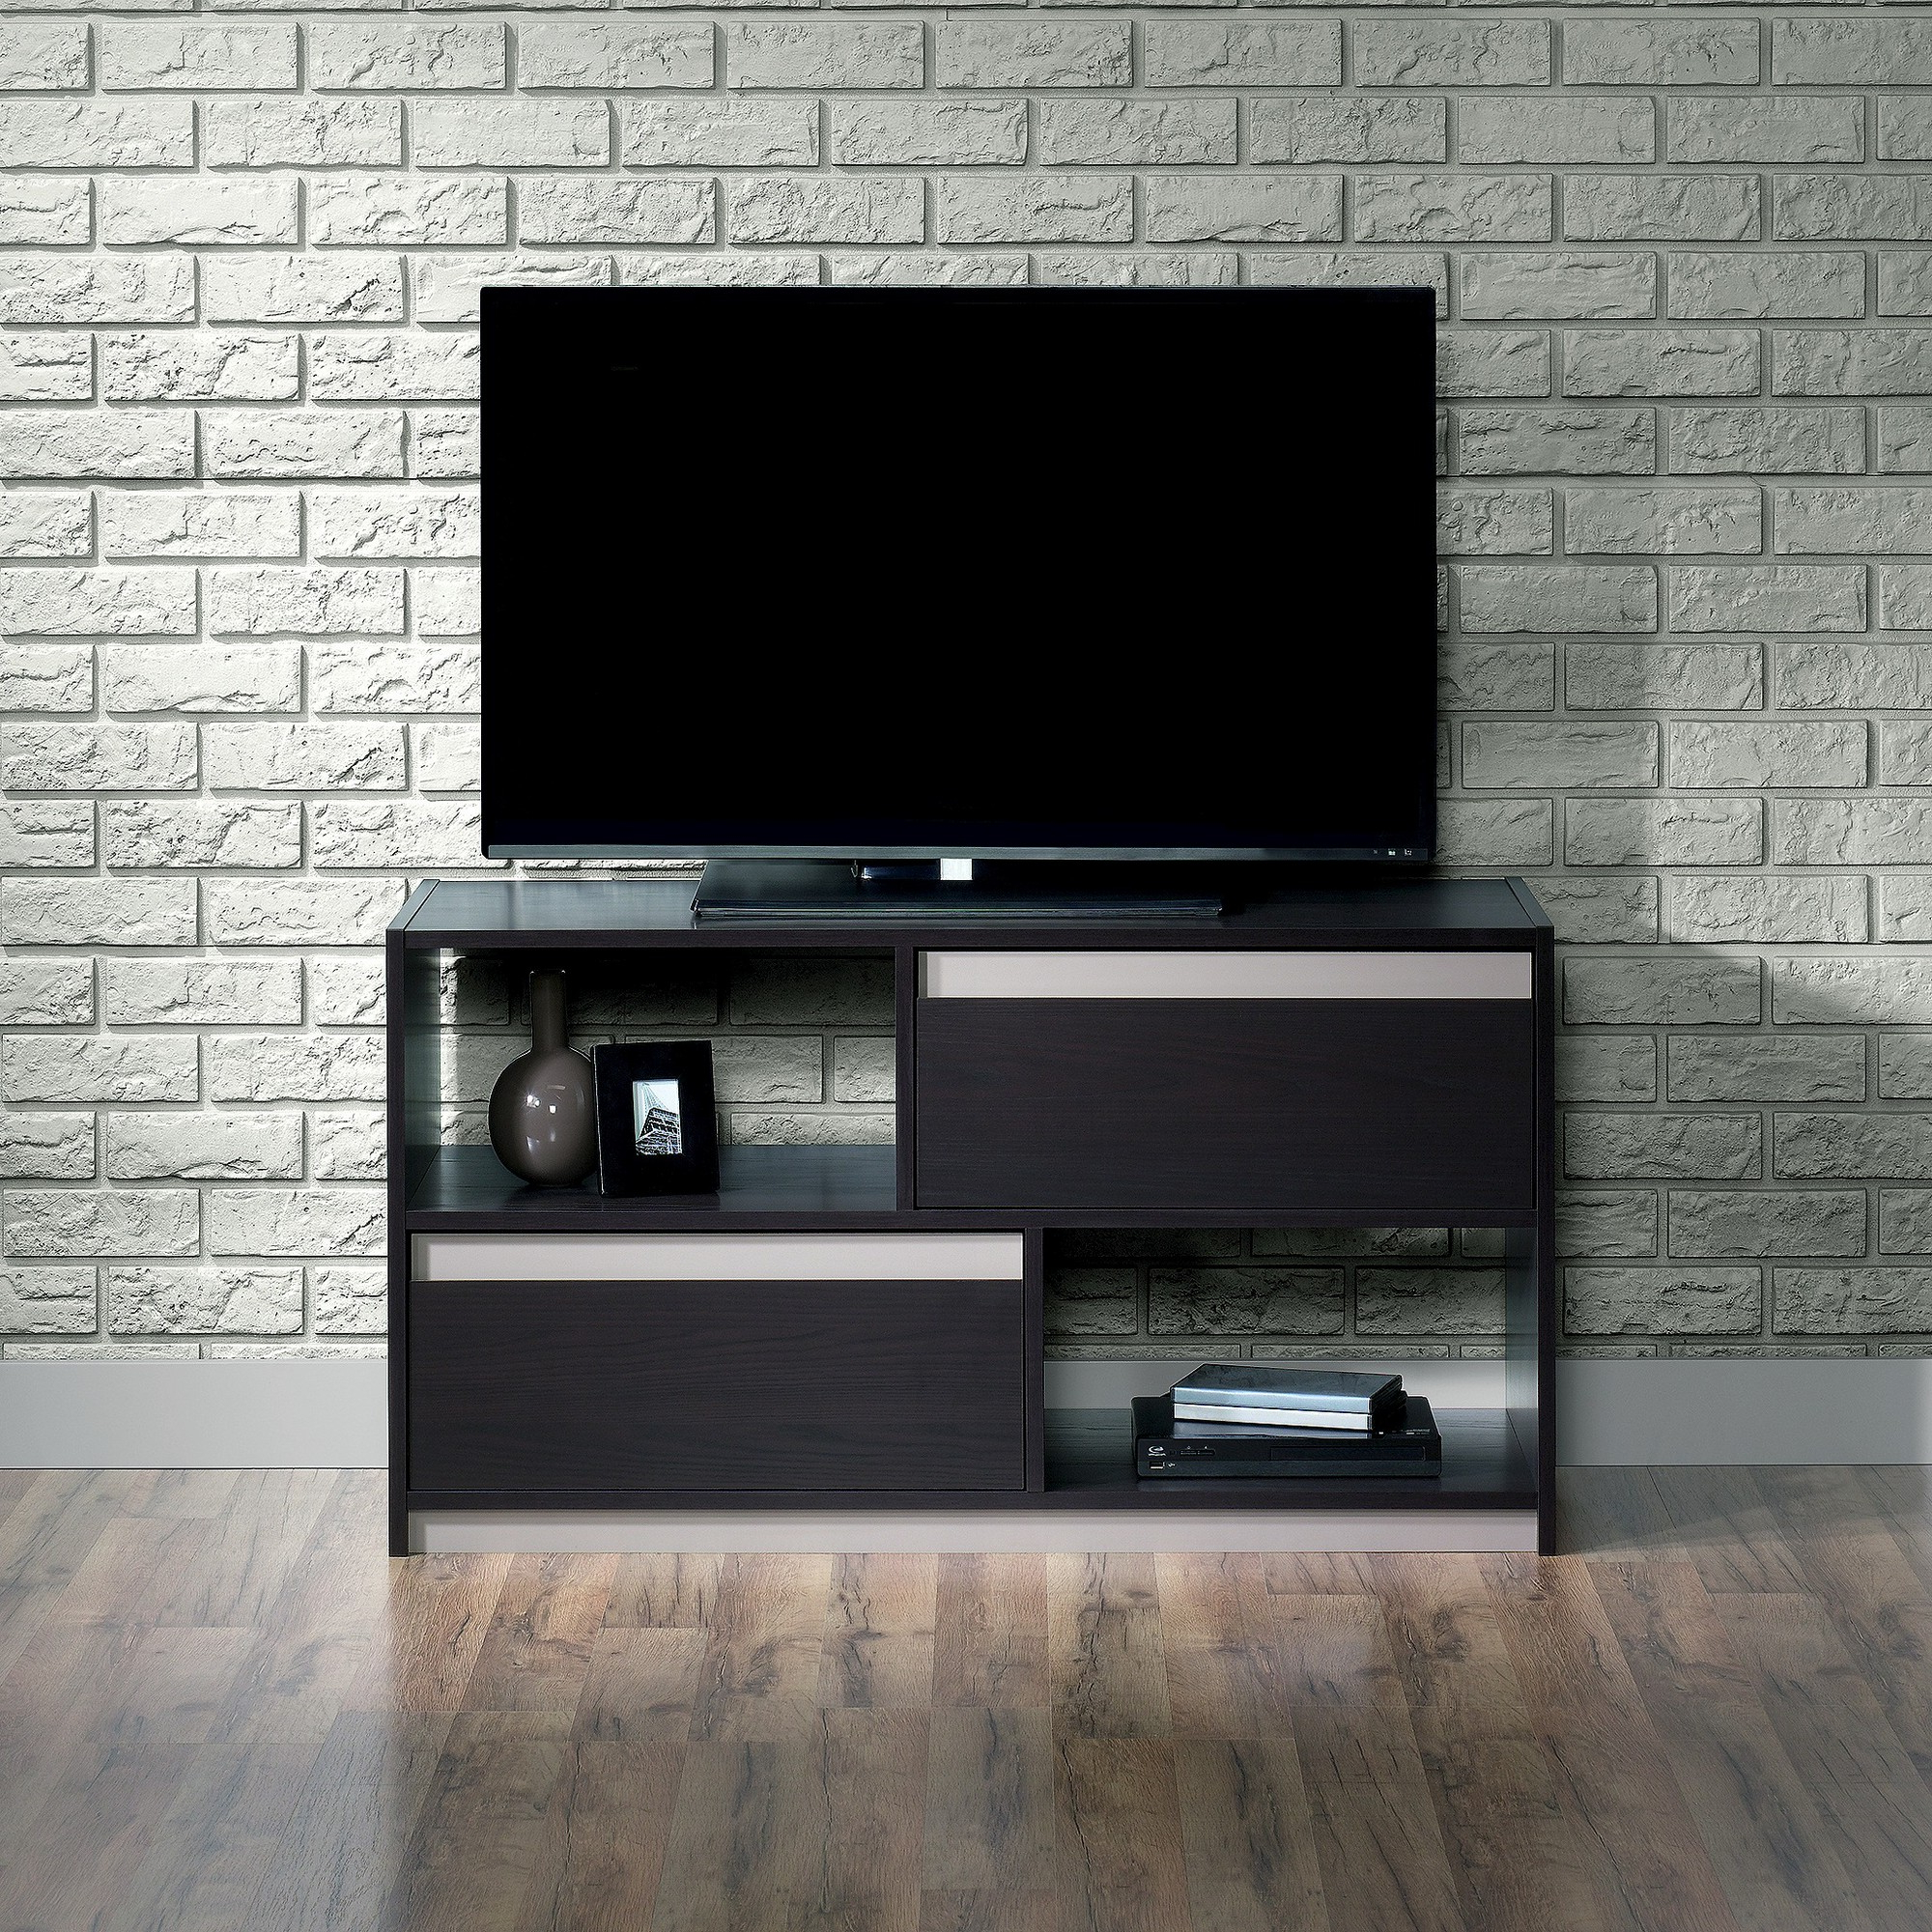 "Square1 Tv Stand With Reversible Accents 42"" (Fits Up To 47 Pertaining To Maddy 60 Inch Tv Stands (View 19 of 20)"